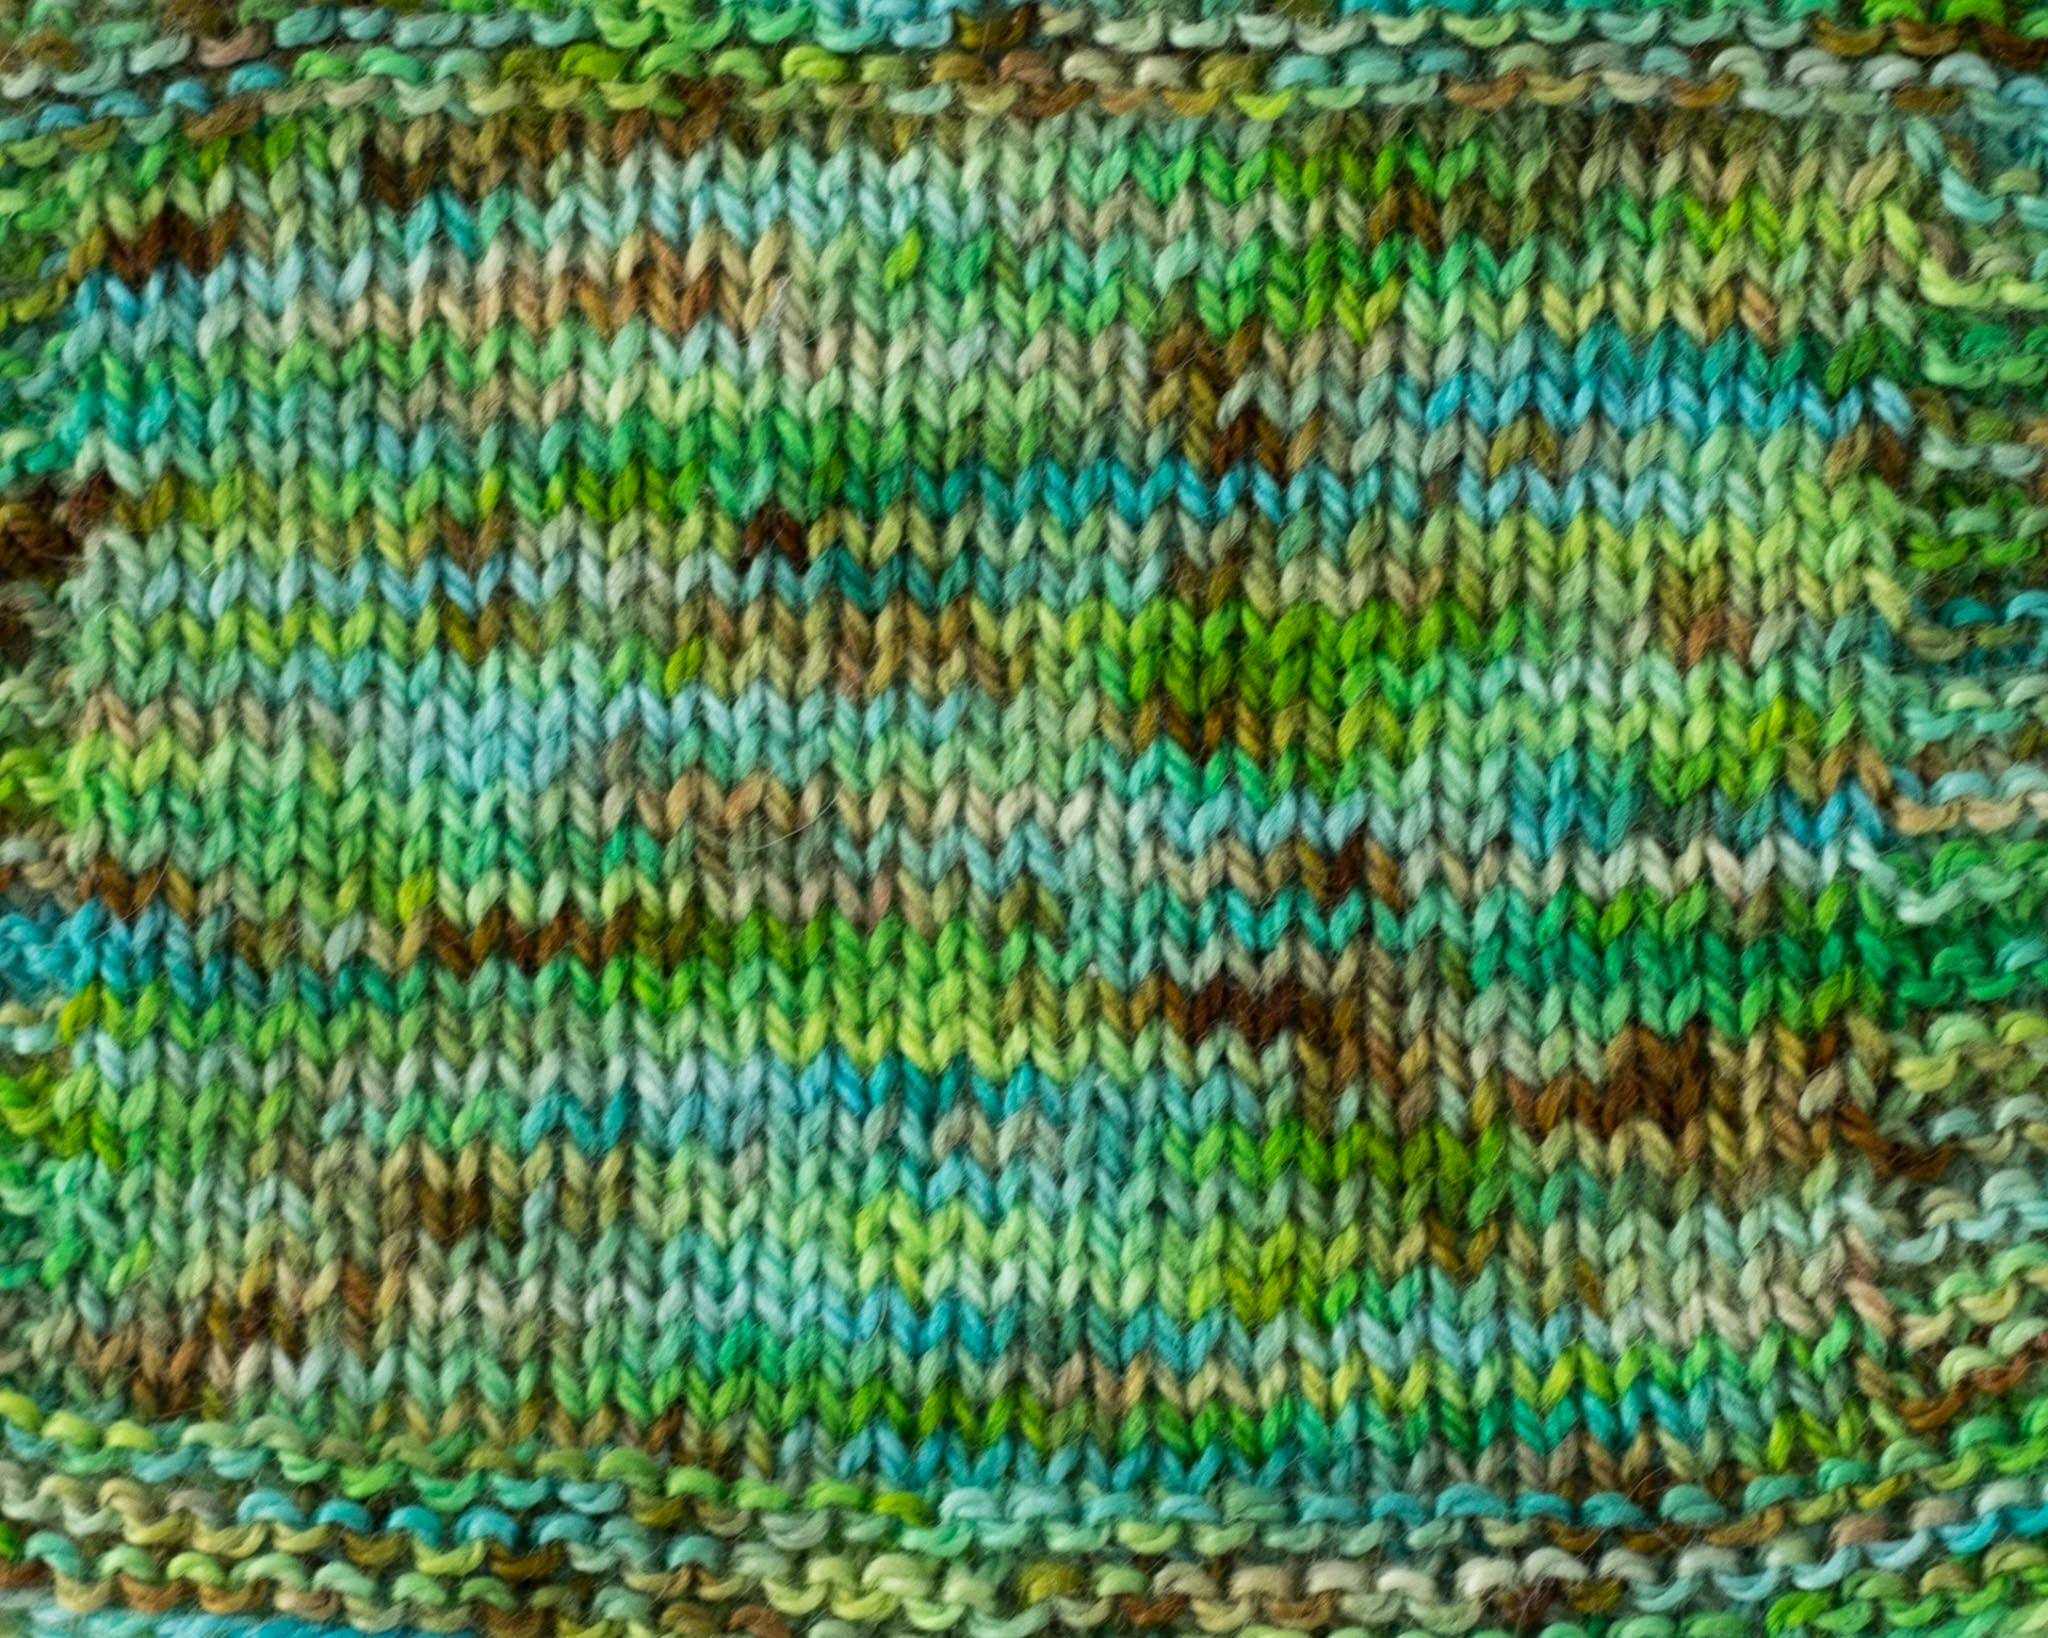 Organic & Fair Trade Cotton Yarn-Green, Teal, and Brown Swatch